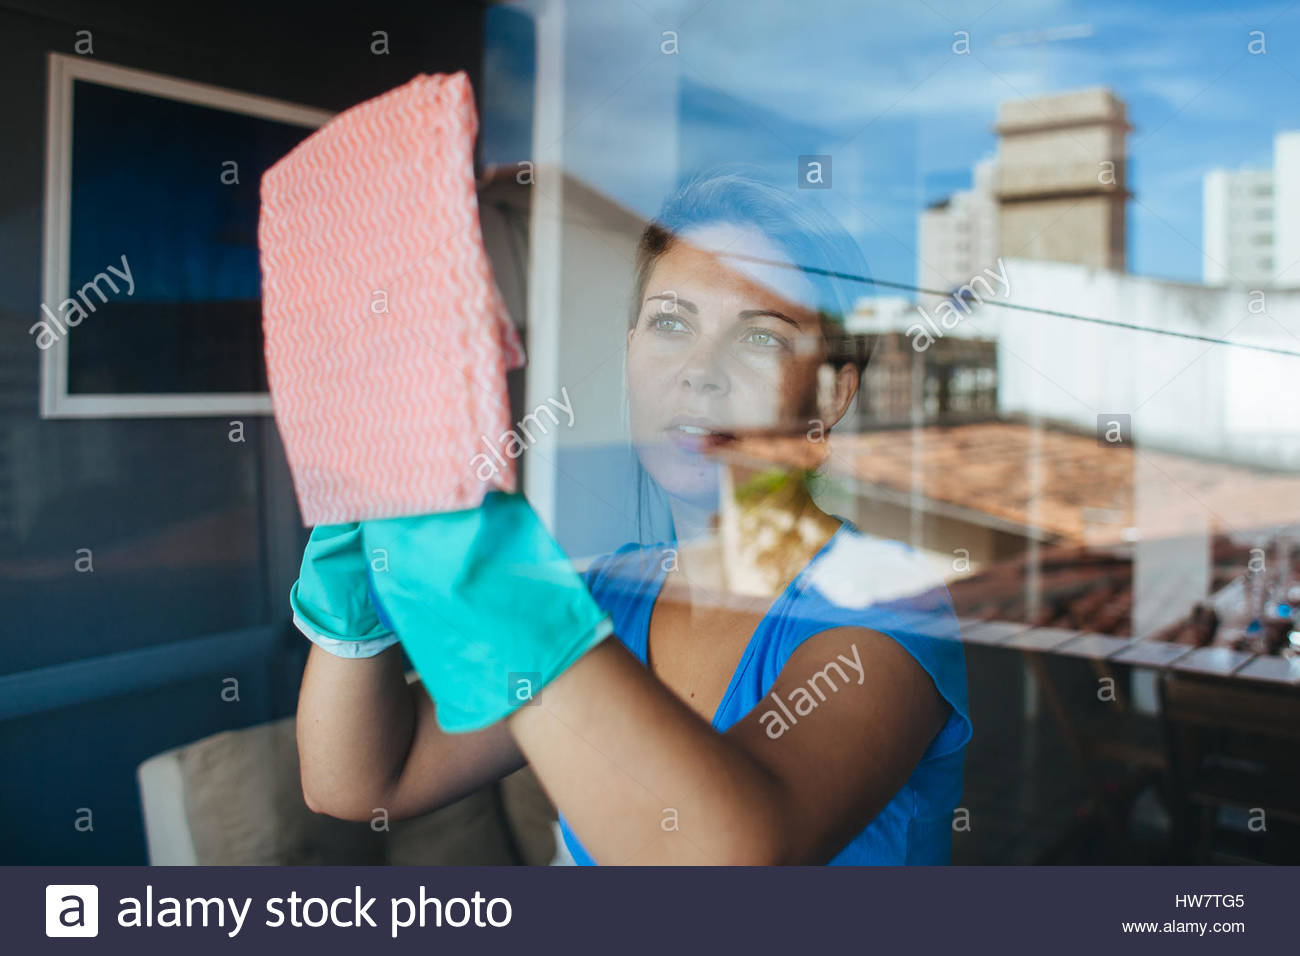 People, housework and housekeeping concept - happy woman in gloves cleaning window with rag and cleanser spray at - Stock Image